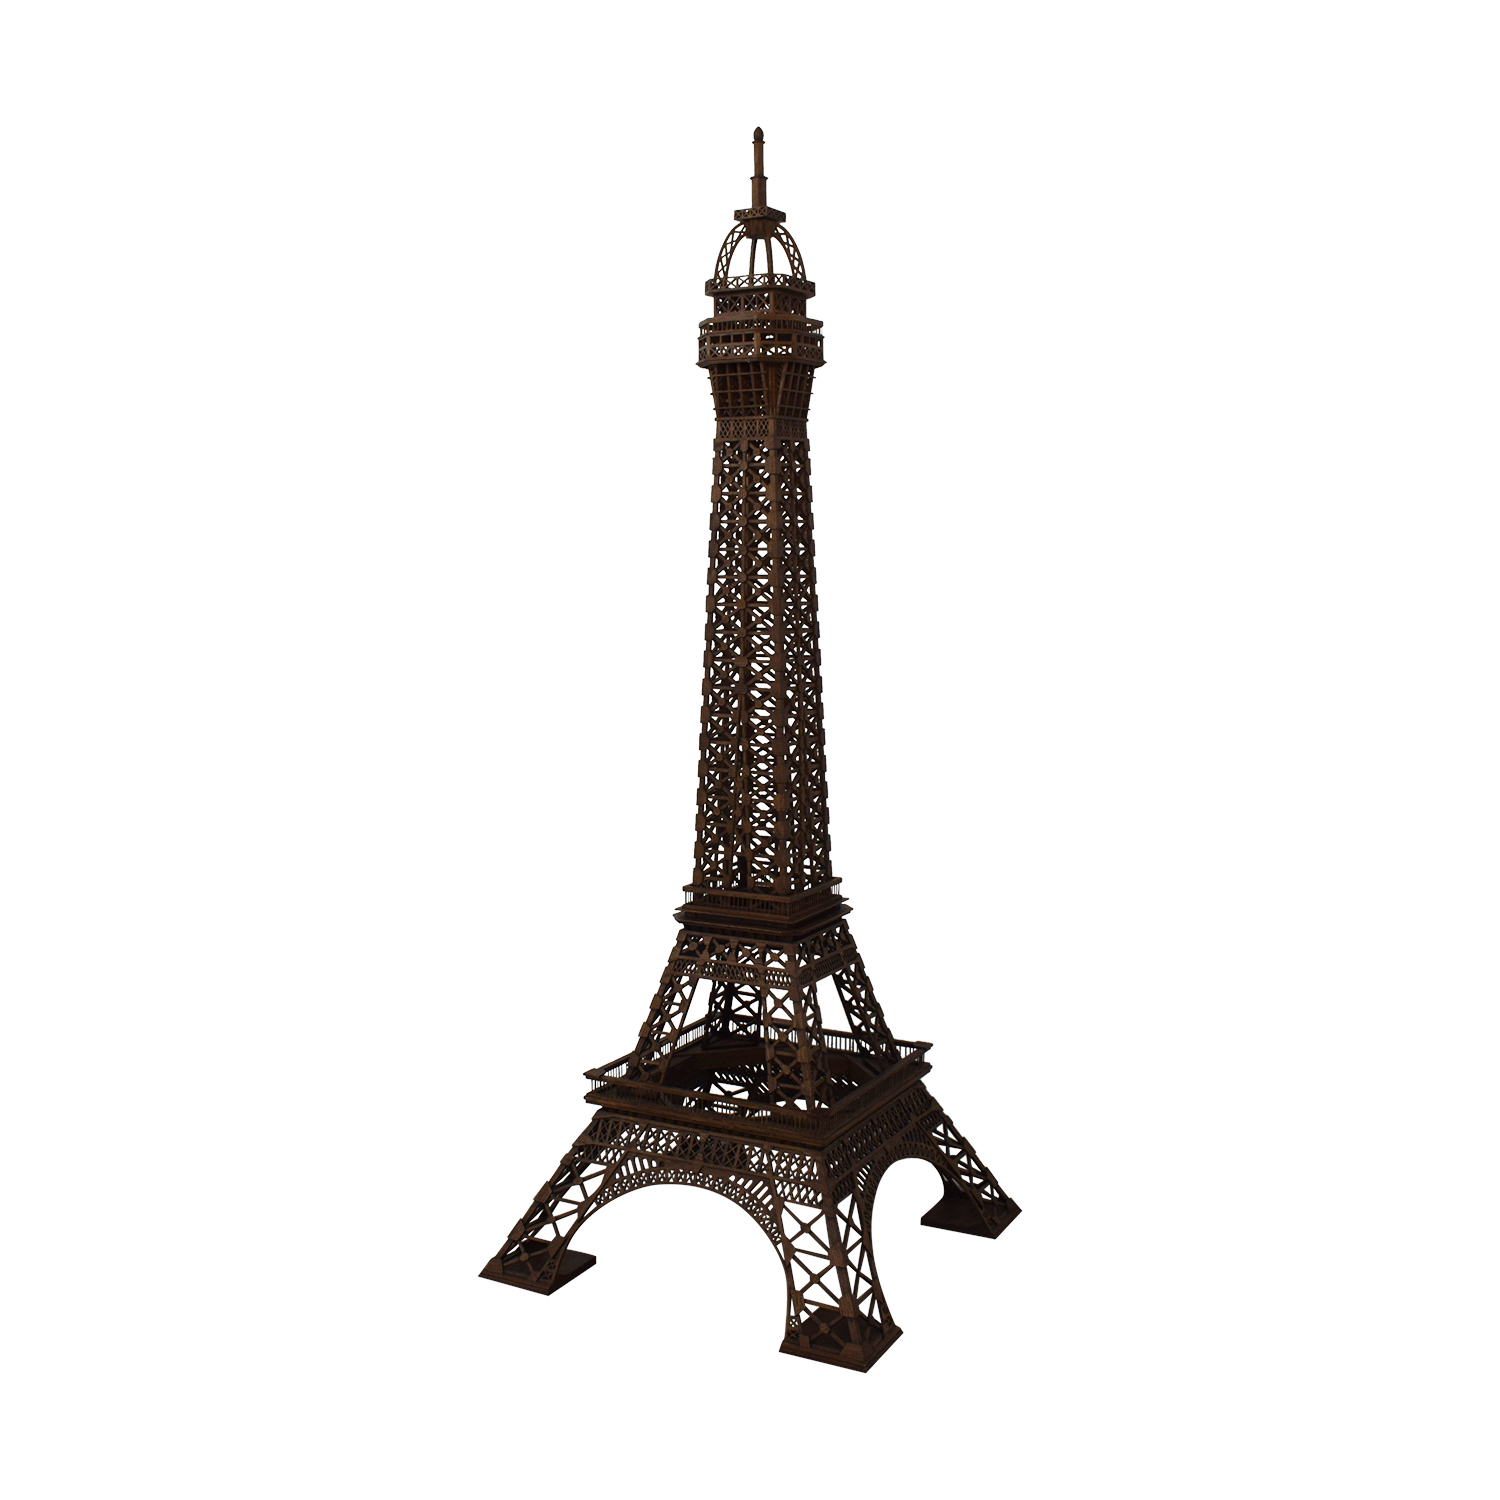 Restoration Hardware Restoration Hardware Eiffel Tower